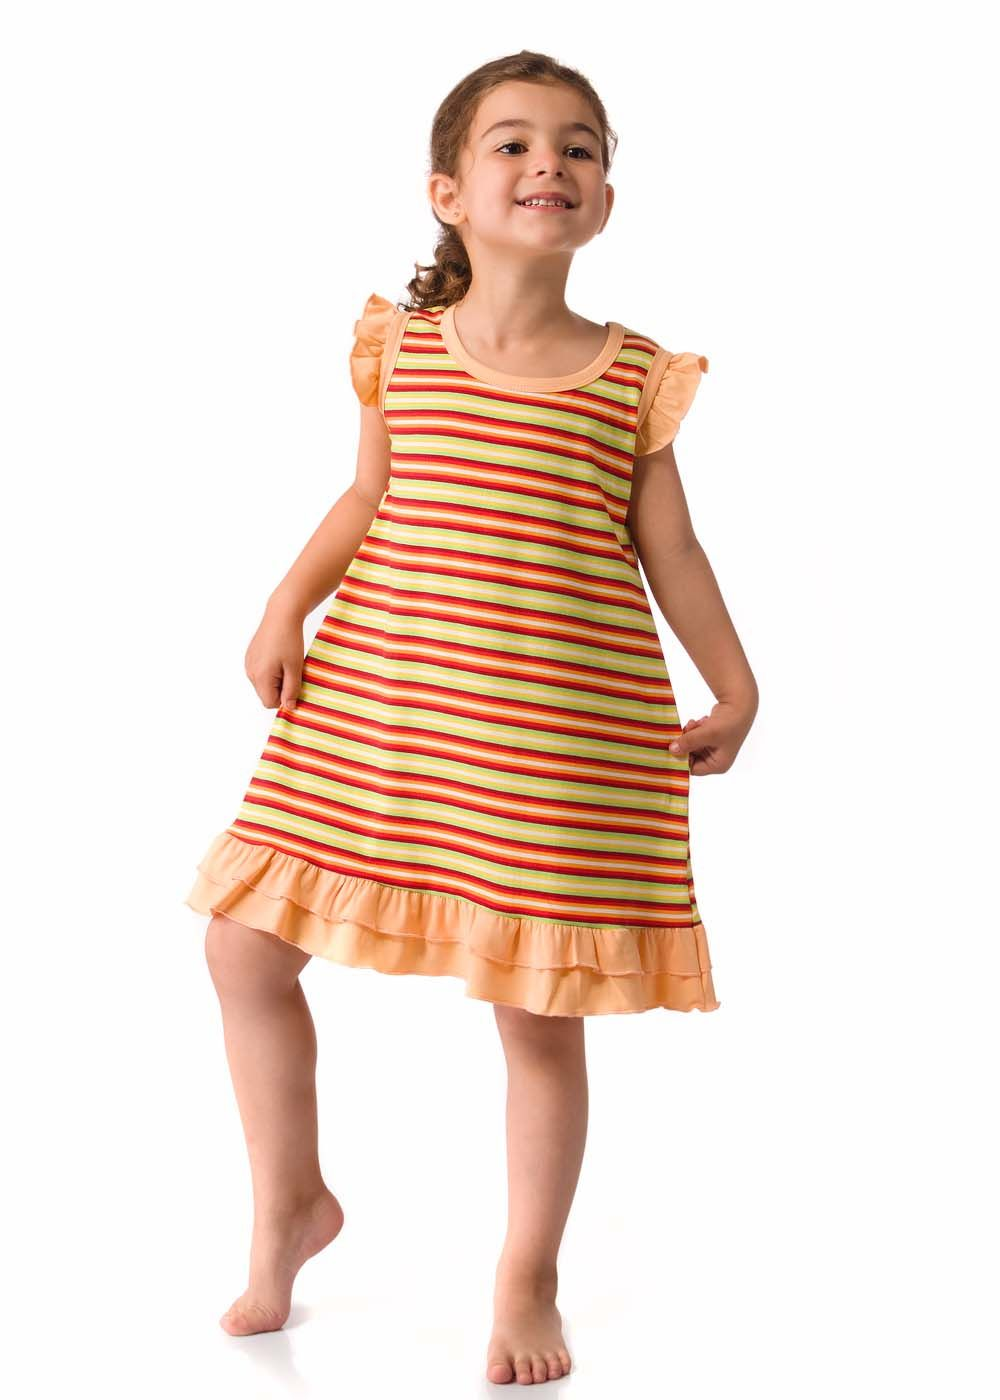 Kids' nightgown   bstyle